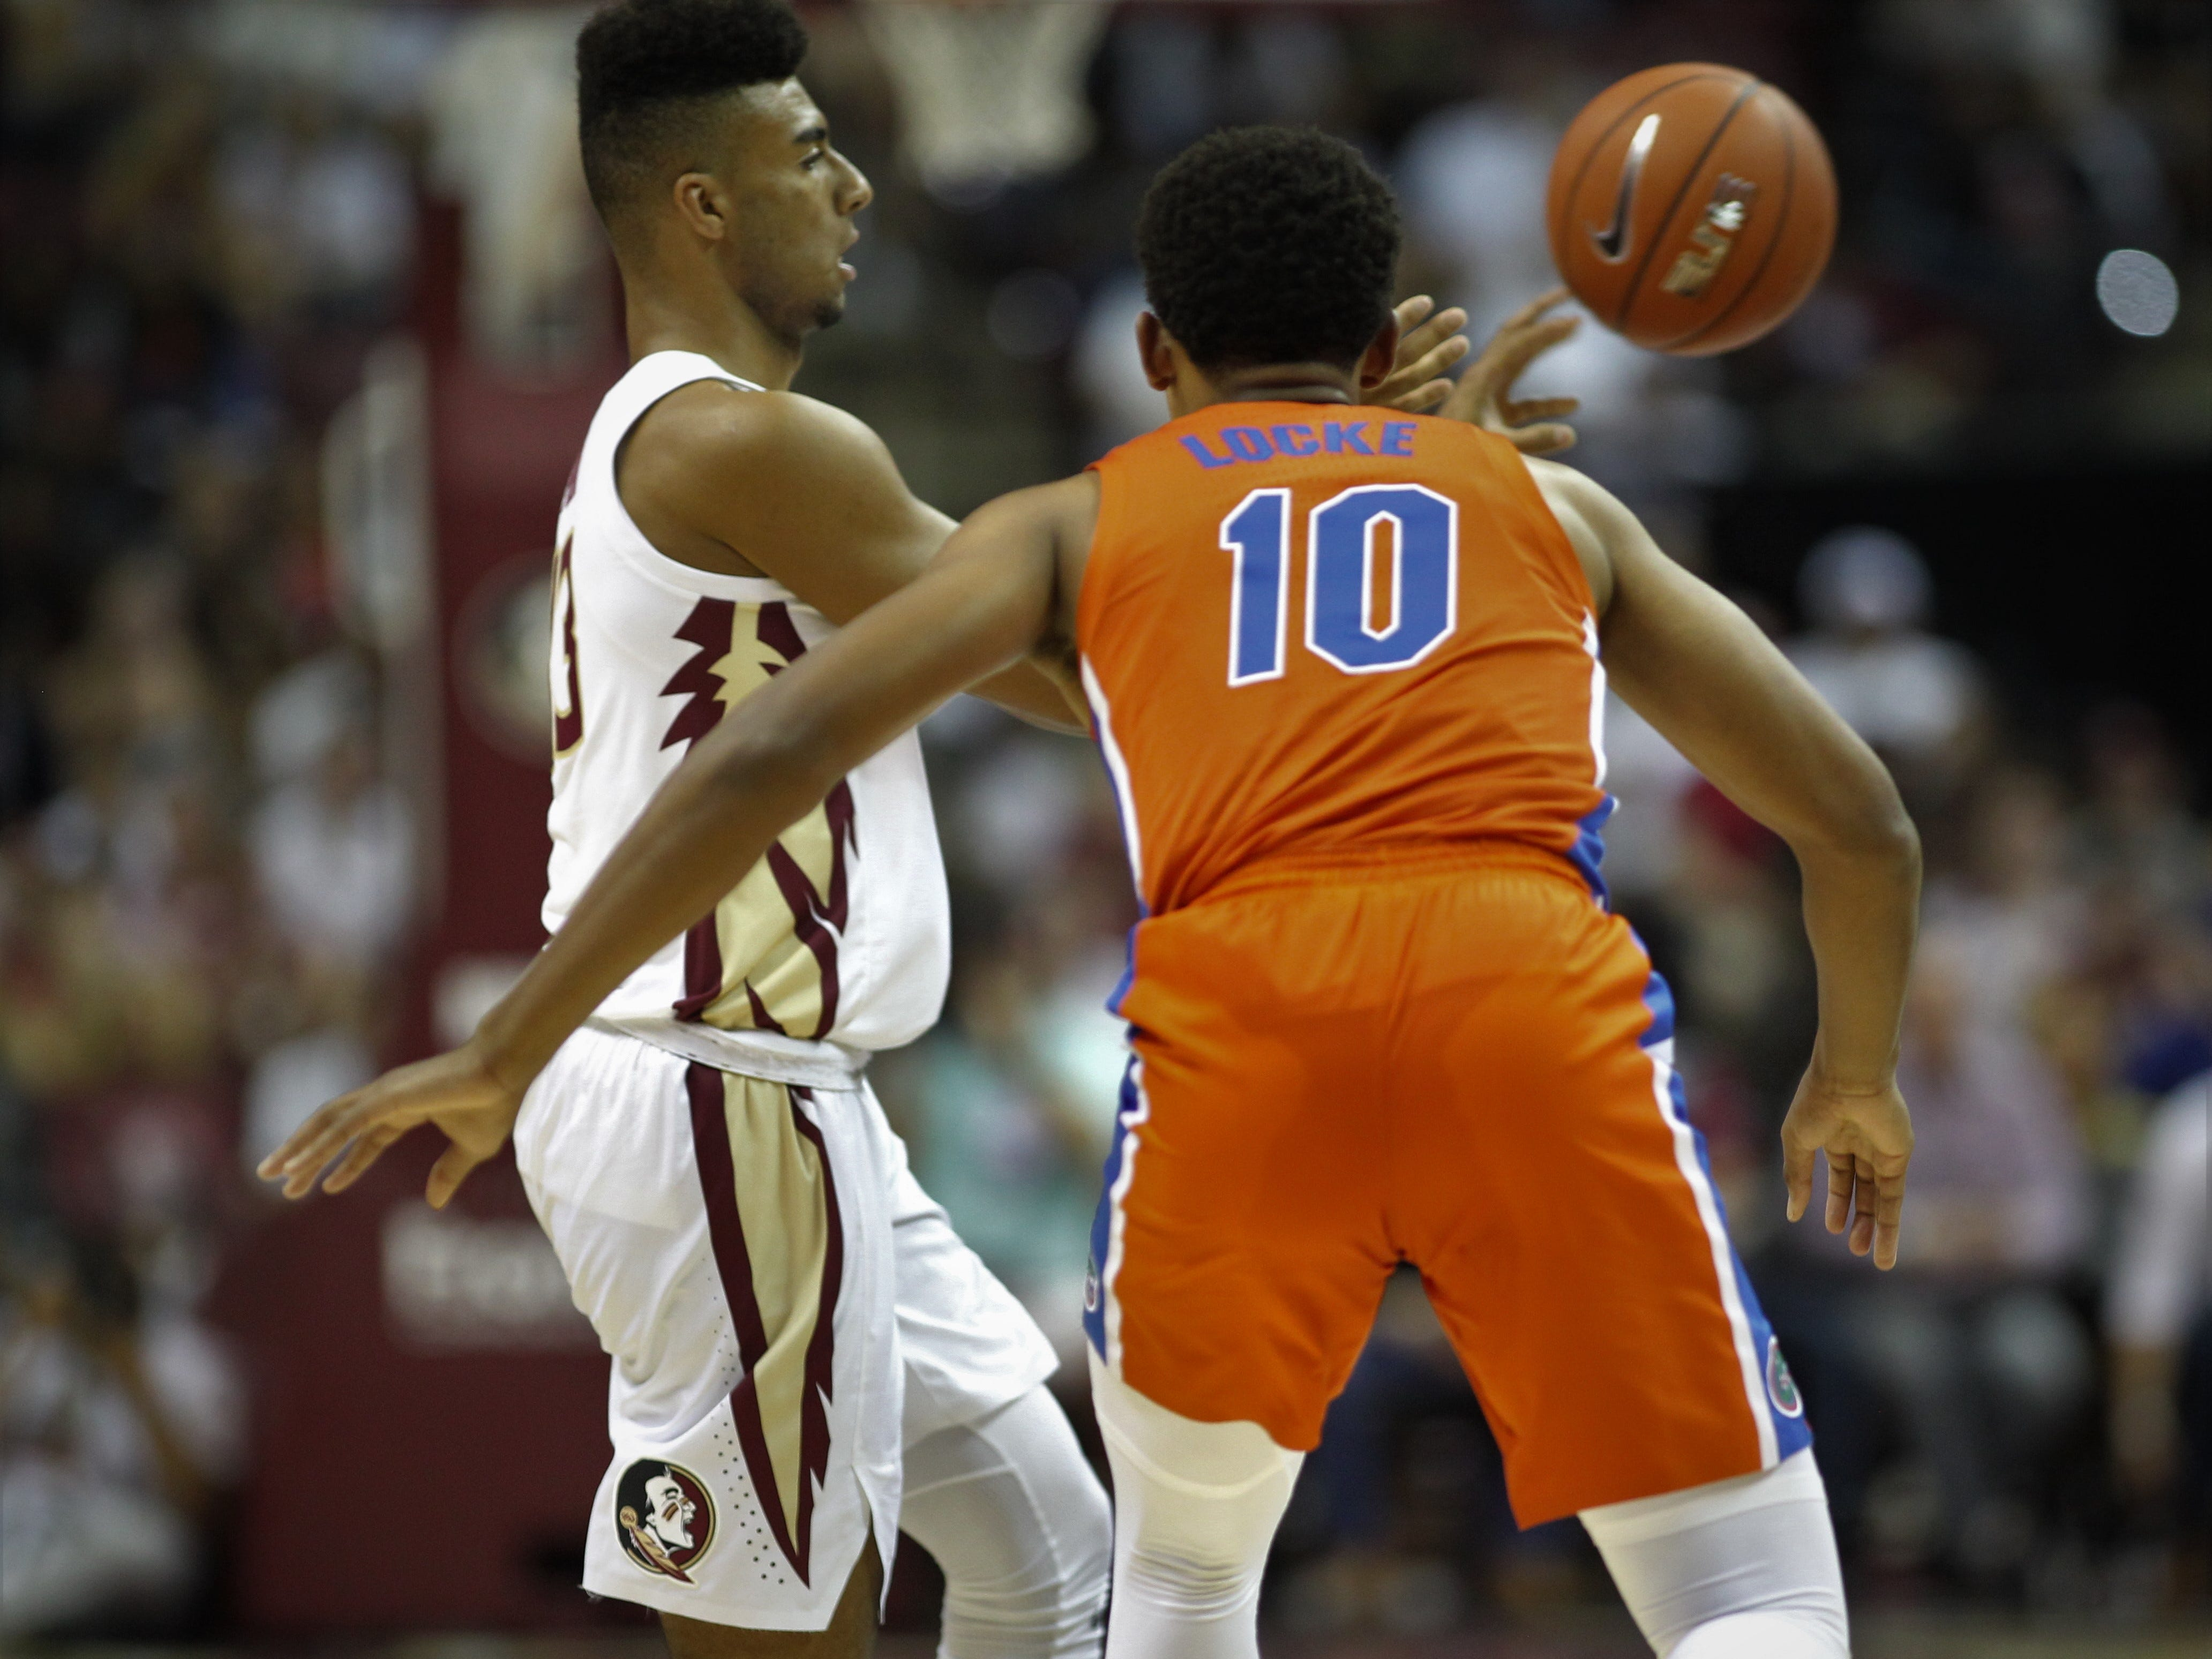 Florida State's Anthony Polite makes a pass around the perimeter as Florida's Noah Locke defends during the Sunshine Showdown game Tuesday at the Tucker Civic Center.